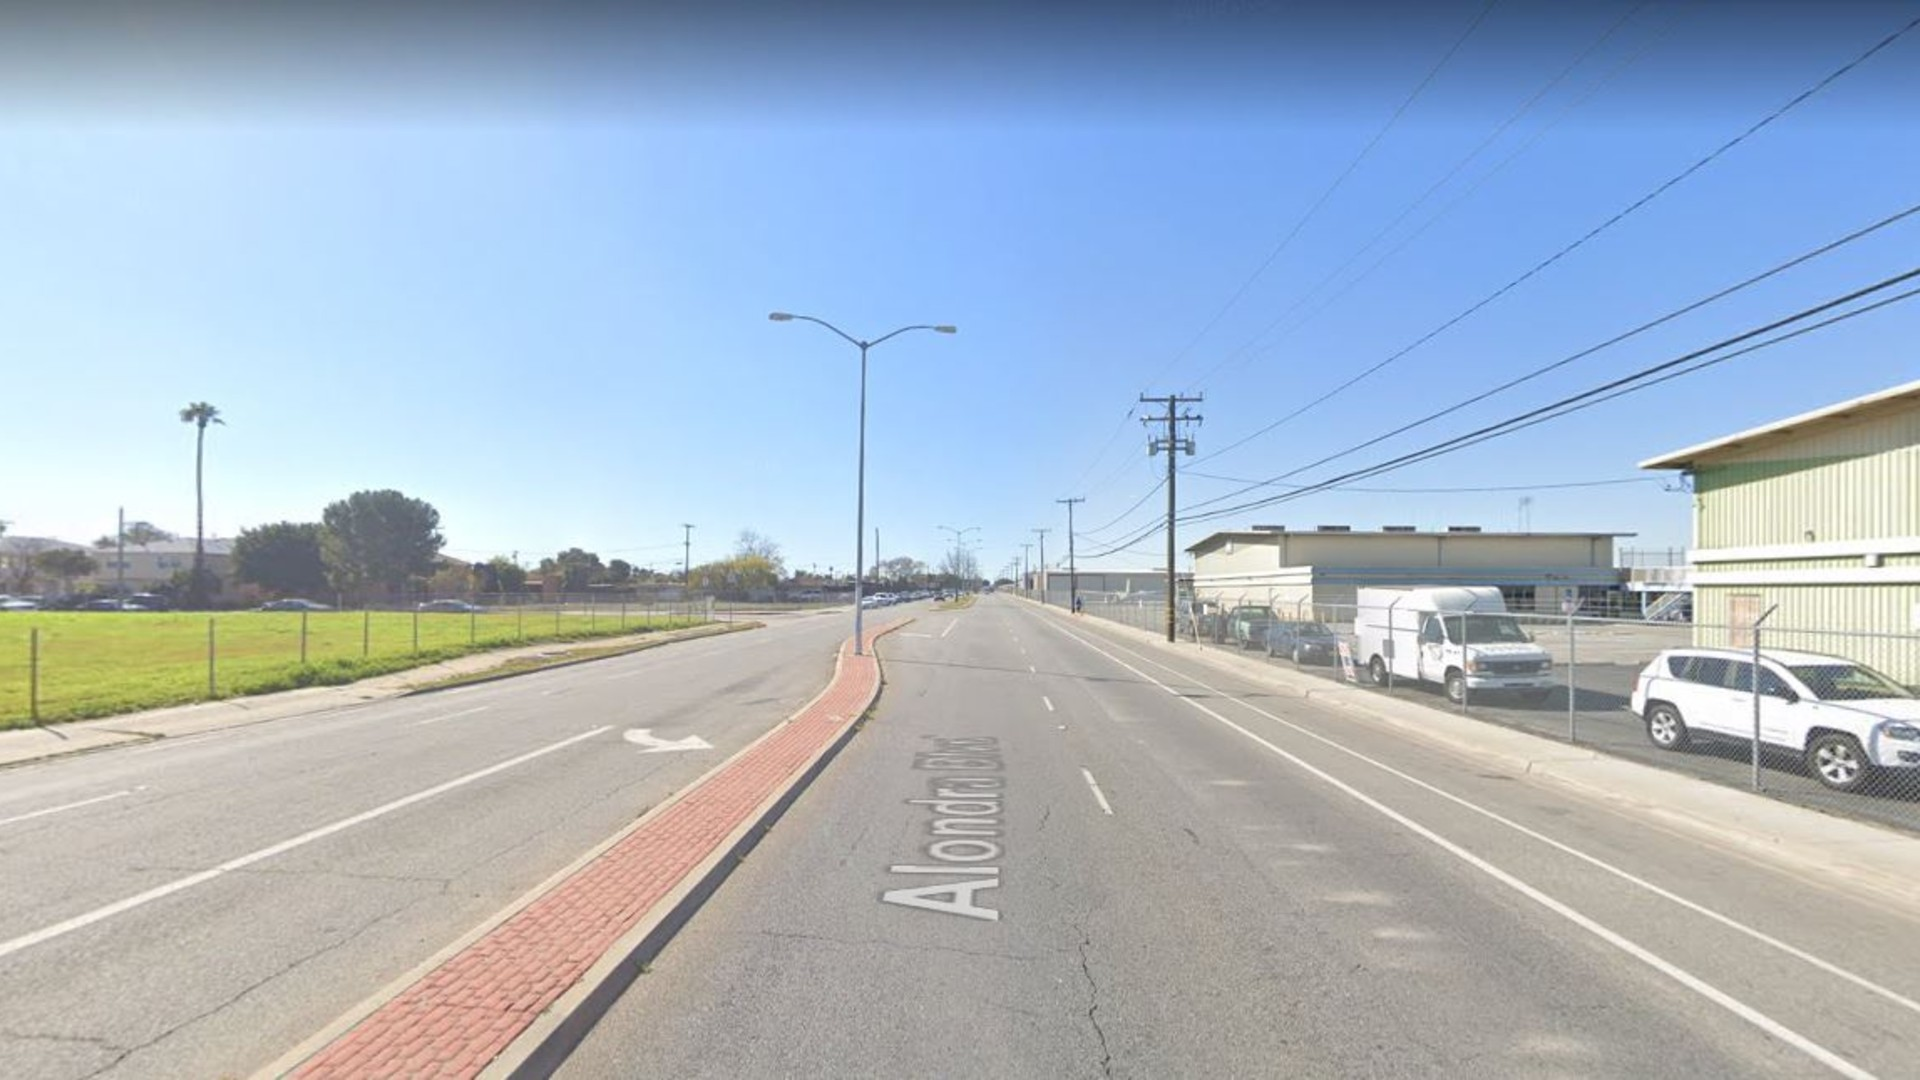 The 1000 block of West Alondra Boulevard in Compton, as viewed in a Google Street View image.